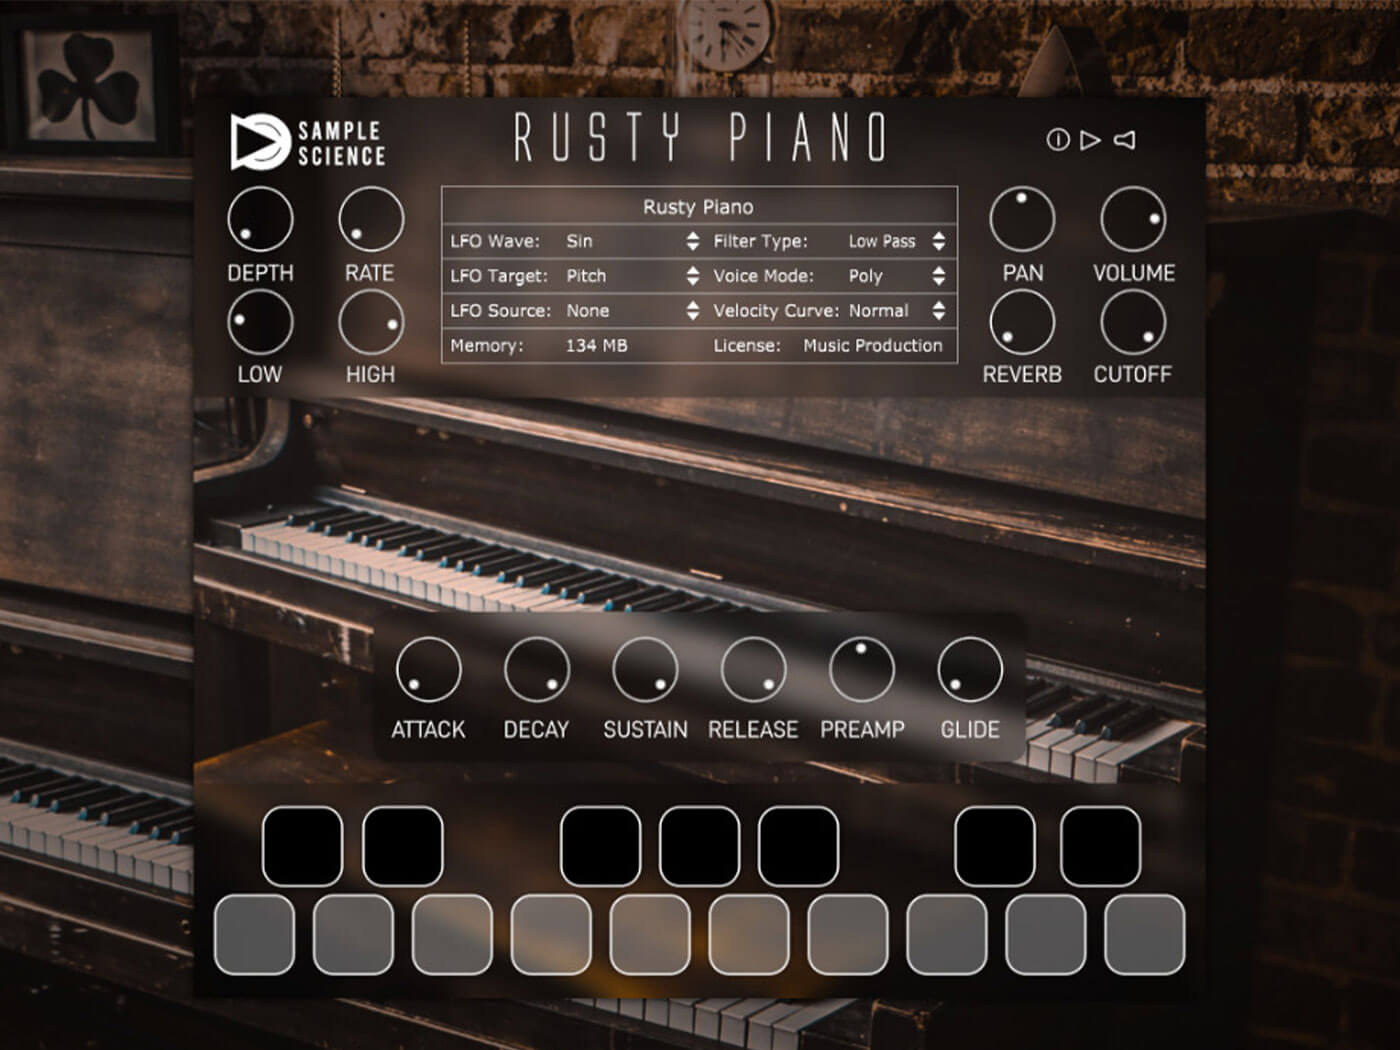 SampleScience Rusty Piano is a free plug-in for softly saturated piano sounds | MusicTech